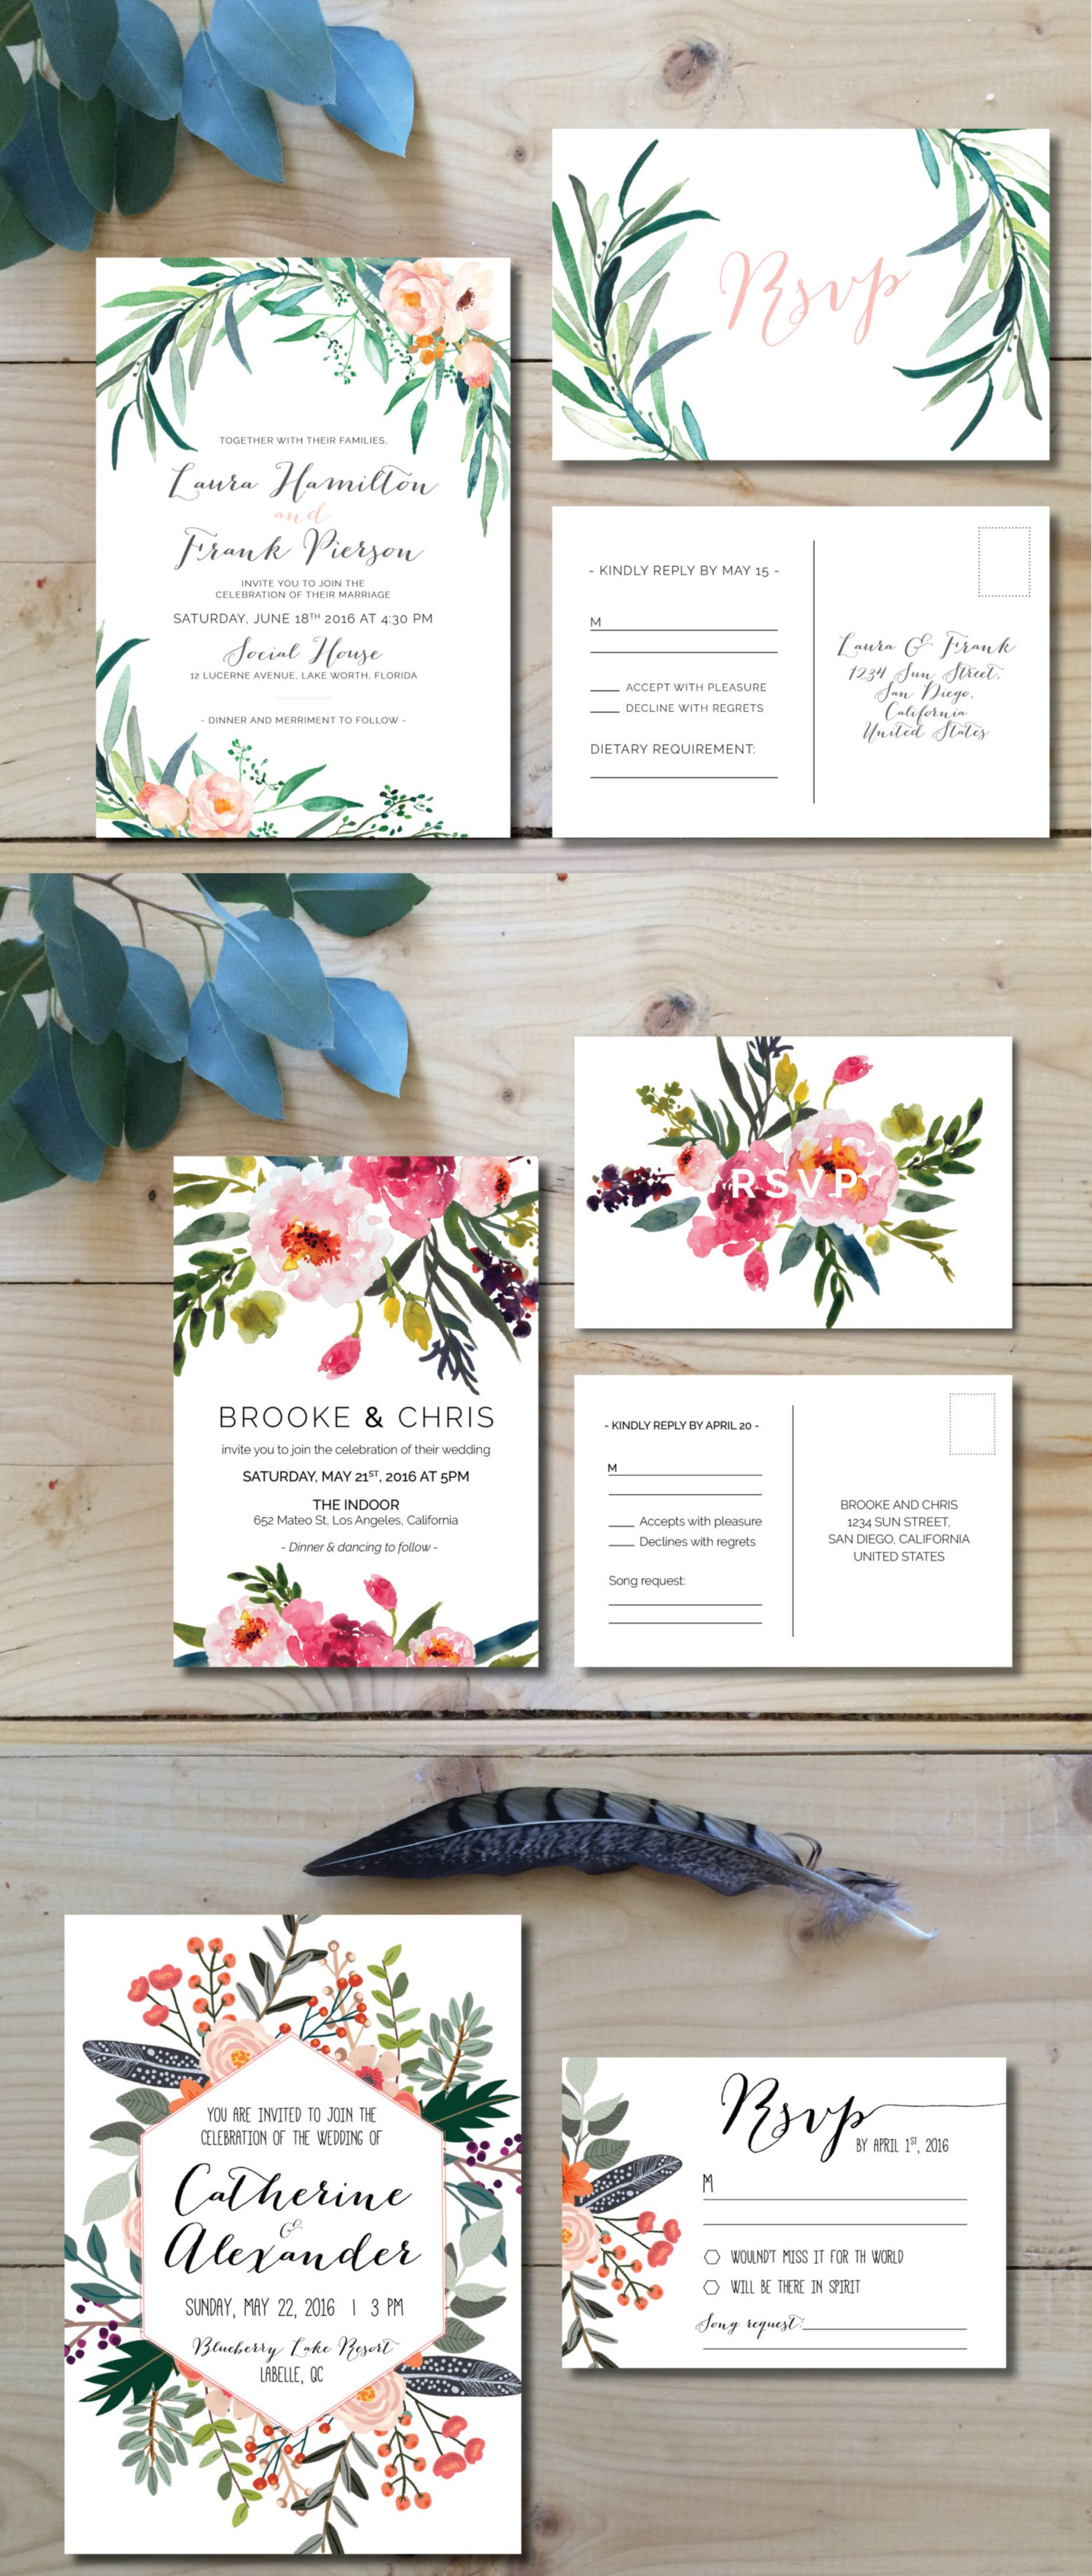 Top 5 Etsy shops for wedding invitations // Luxe & Honey | S+M 7-11 ...